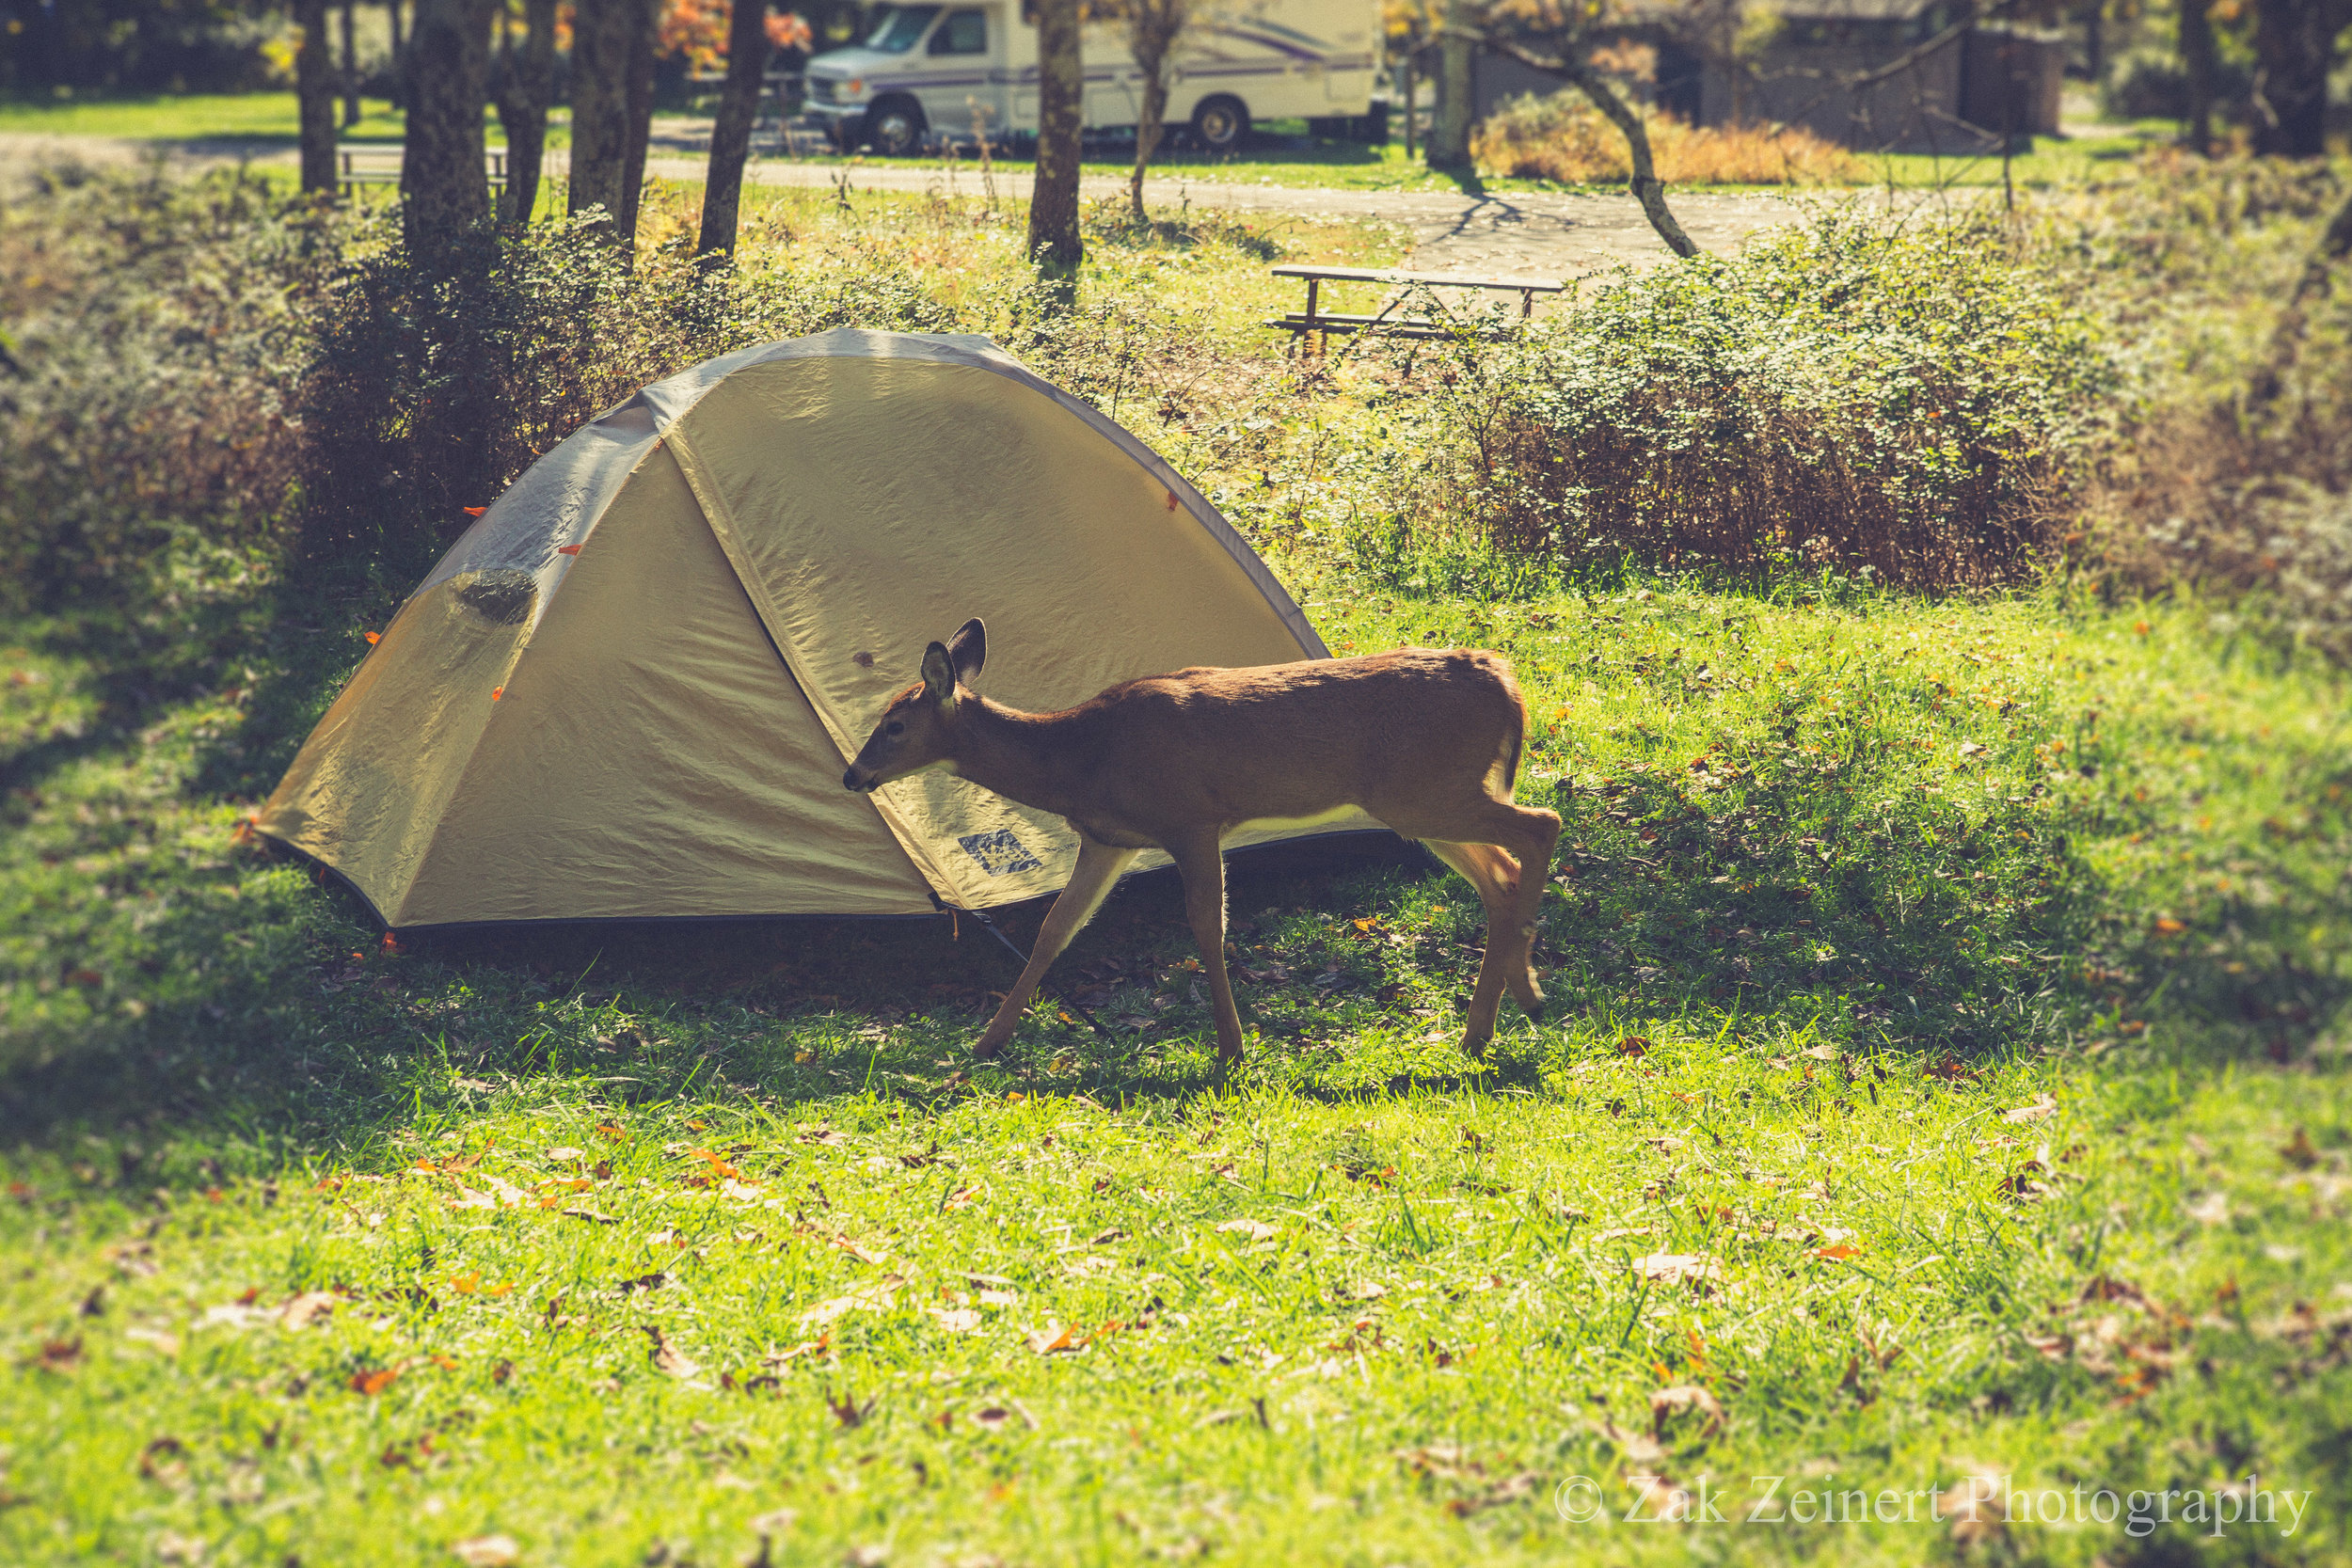 At my campground in Big Meadows, dear would frequently stroll through my campsite. Later that evening, a whole herd came galloping through while I ate dinner!